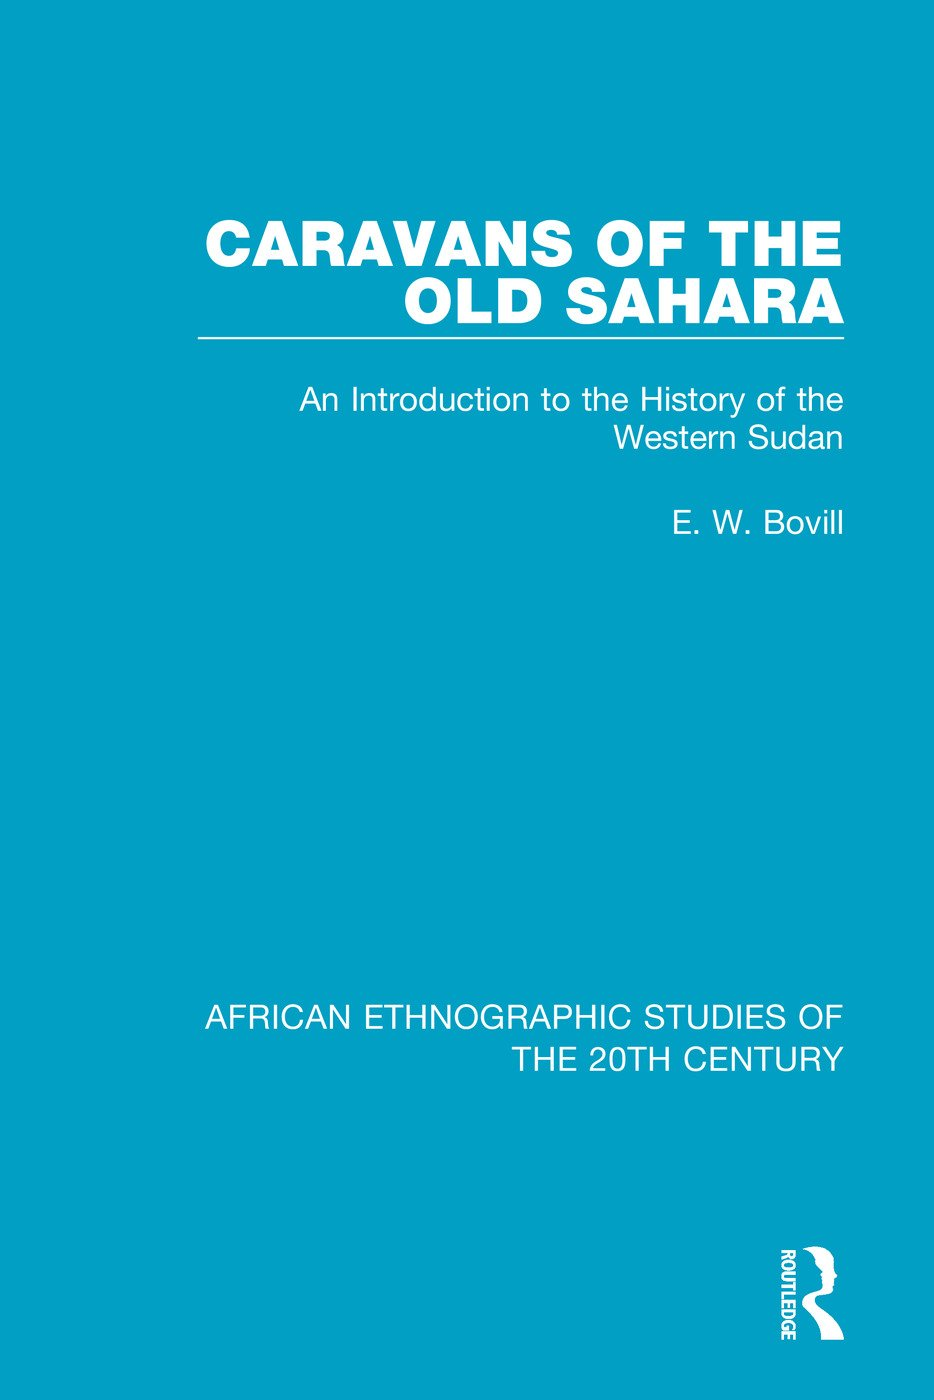 Caravans of the Old Sahara: An Introduction to the History of the Western Sudan book cover